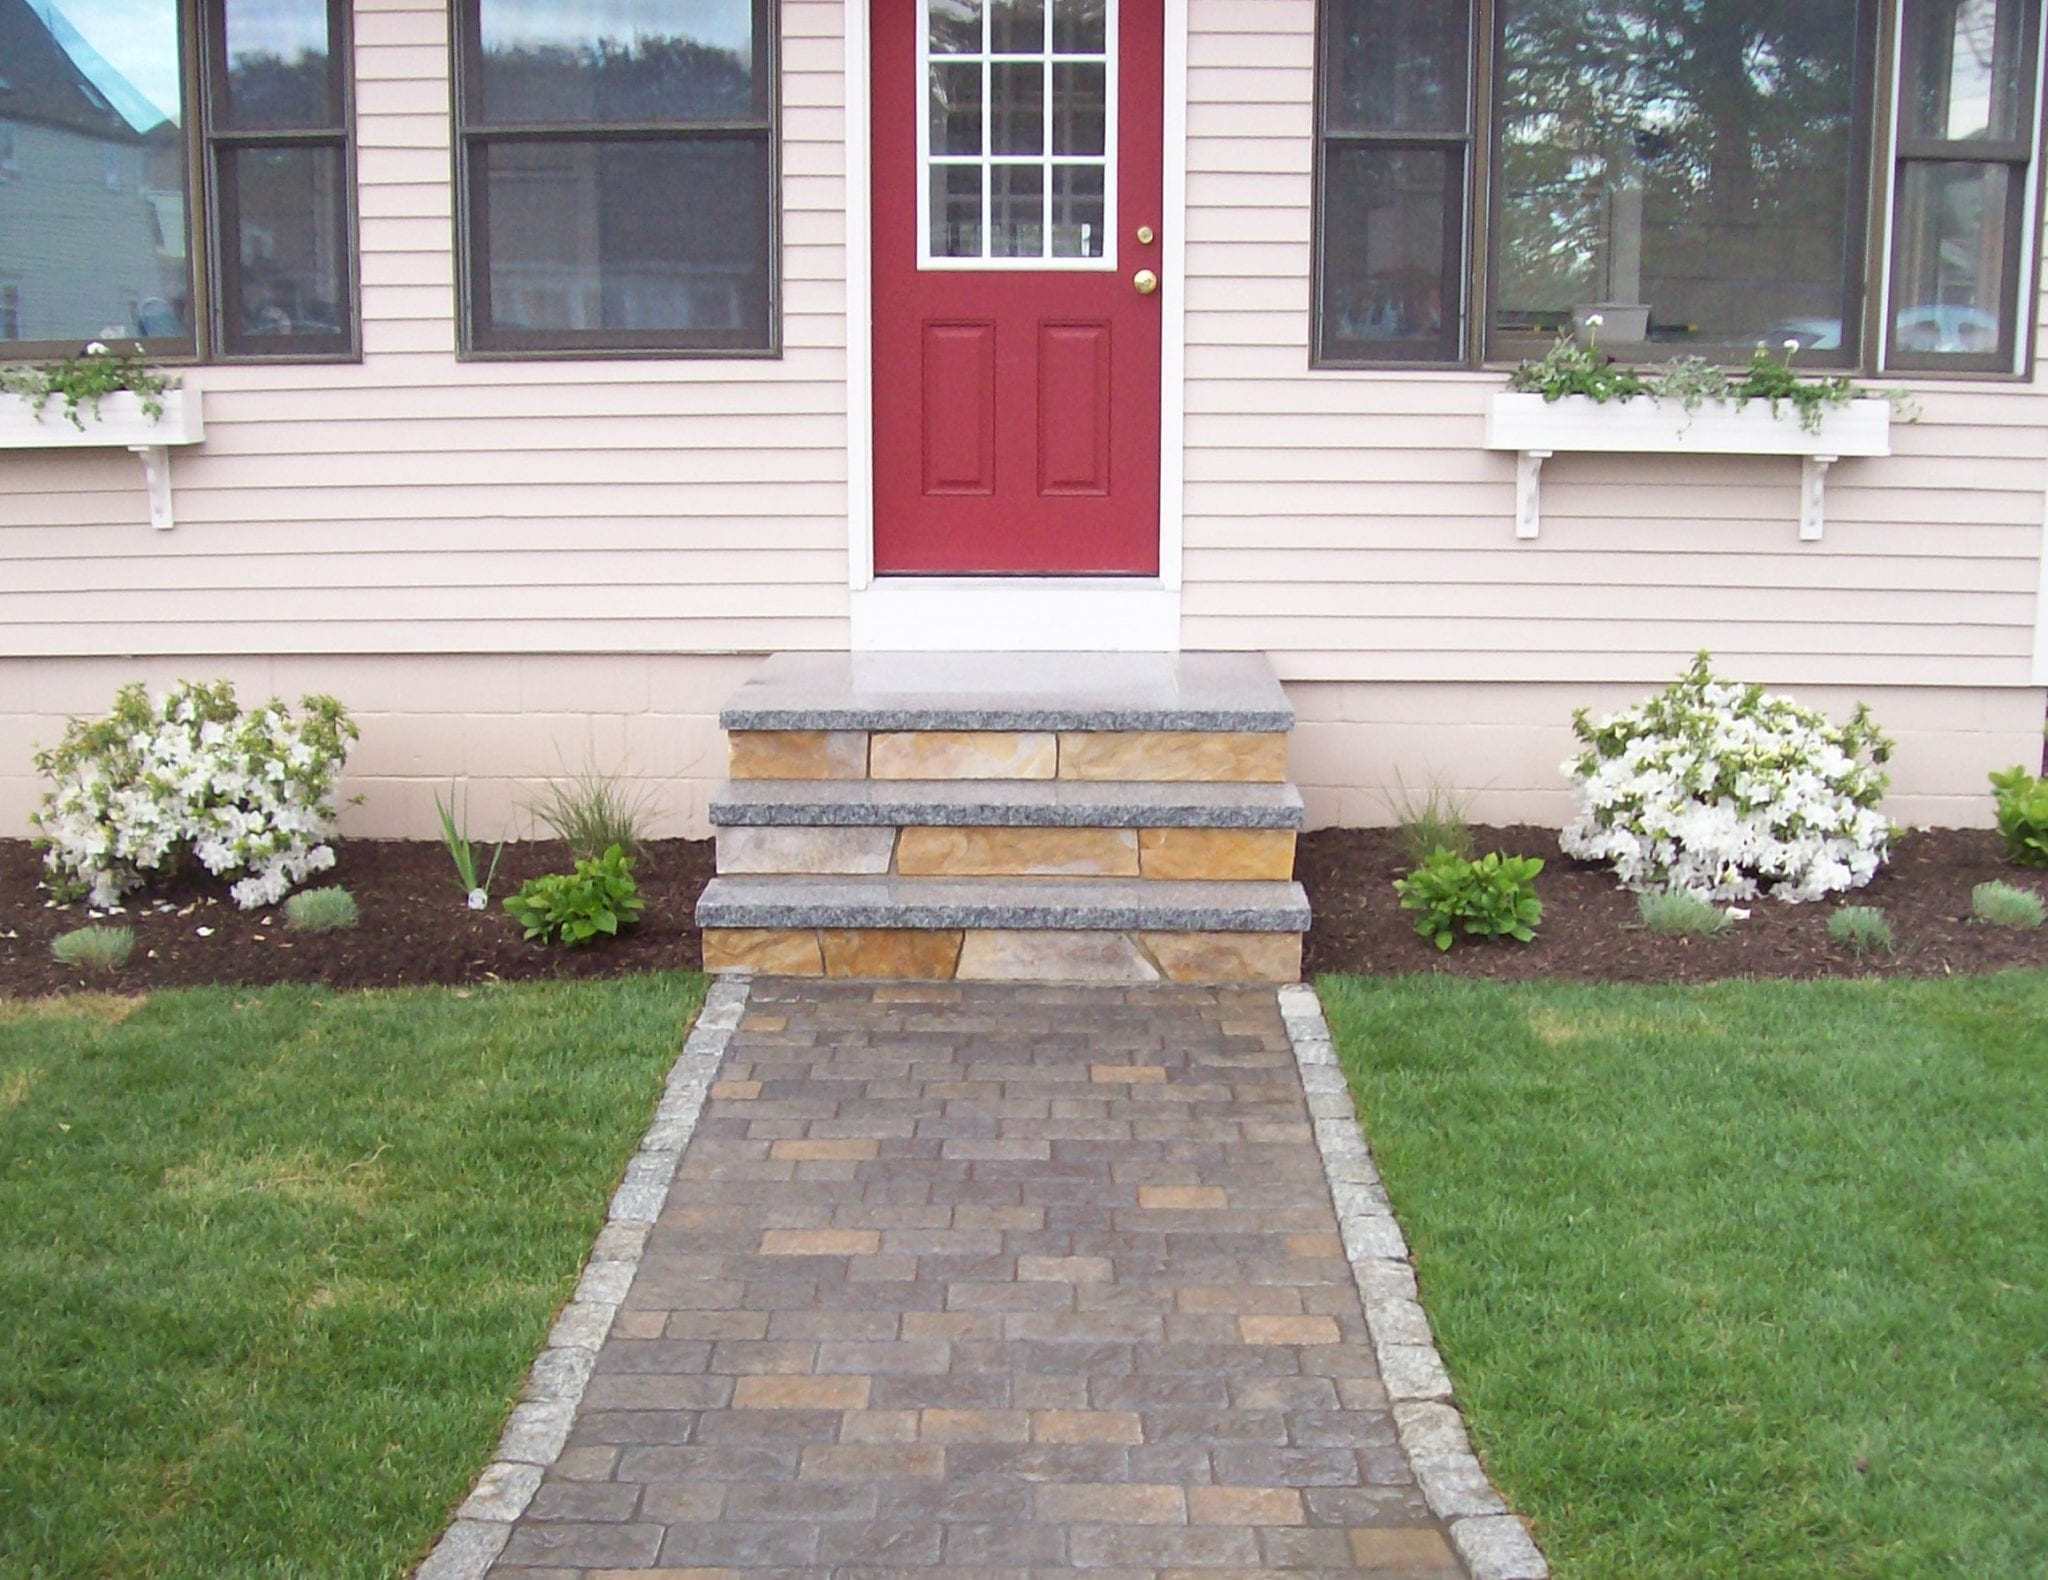 Scarborough-Higgins Beach-pavers-walkway-granite-swenson-Hardscape-masonry contractors-landscaping